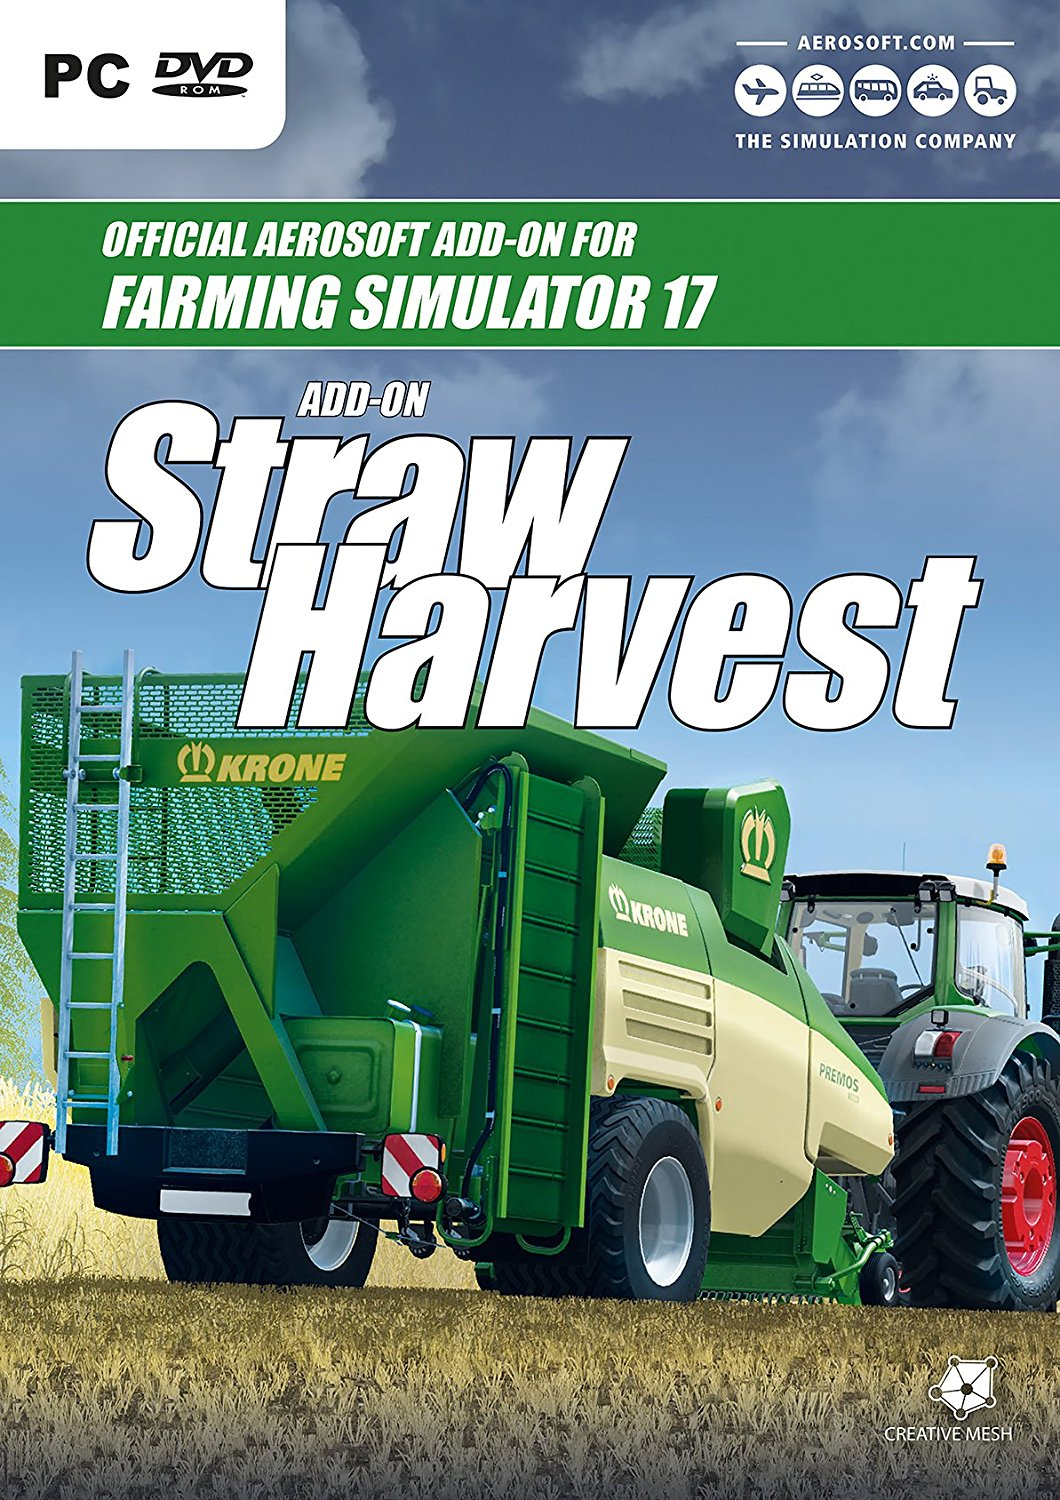 Farming Simulator 17 Add On: Straw Harvest - PC - Video Games by Aerosoft The Chelsea Gamer